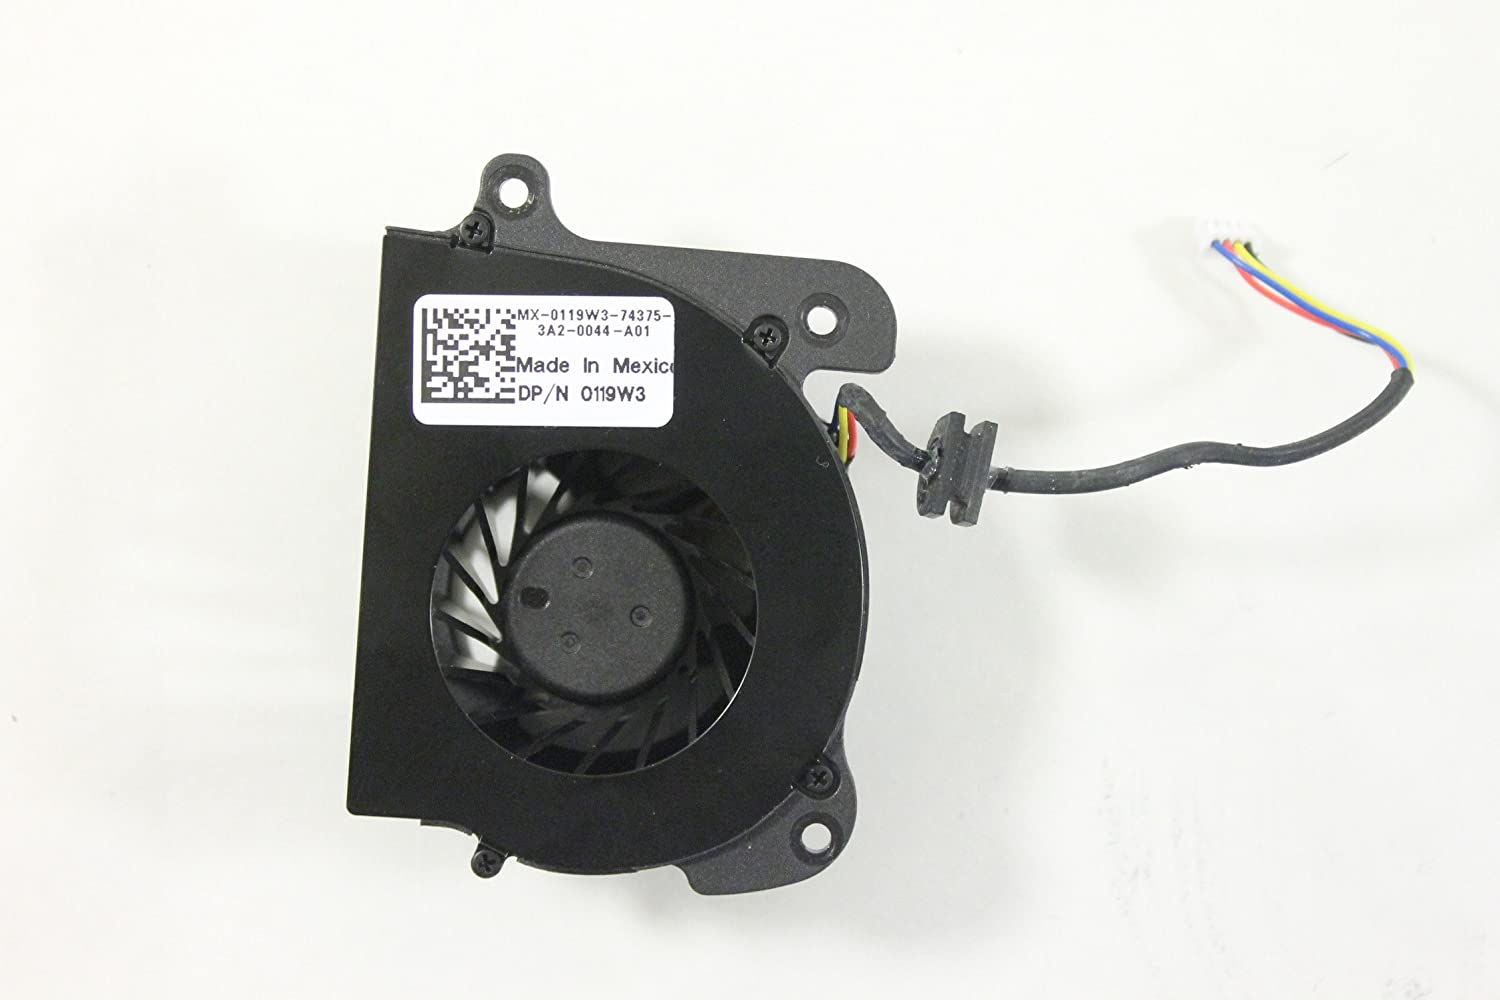 Dell Laptop 119W3 CPU Fan M133MR02 Latitude E6420 XFR